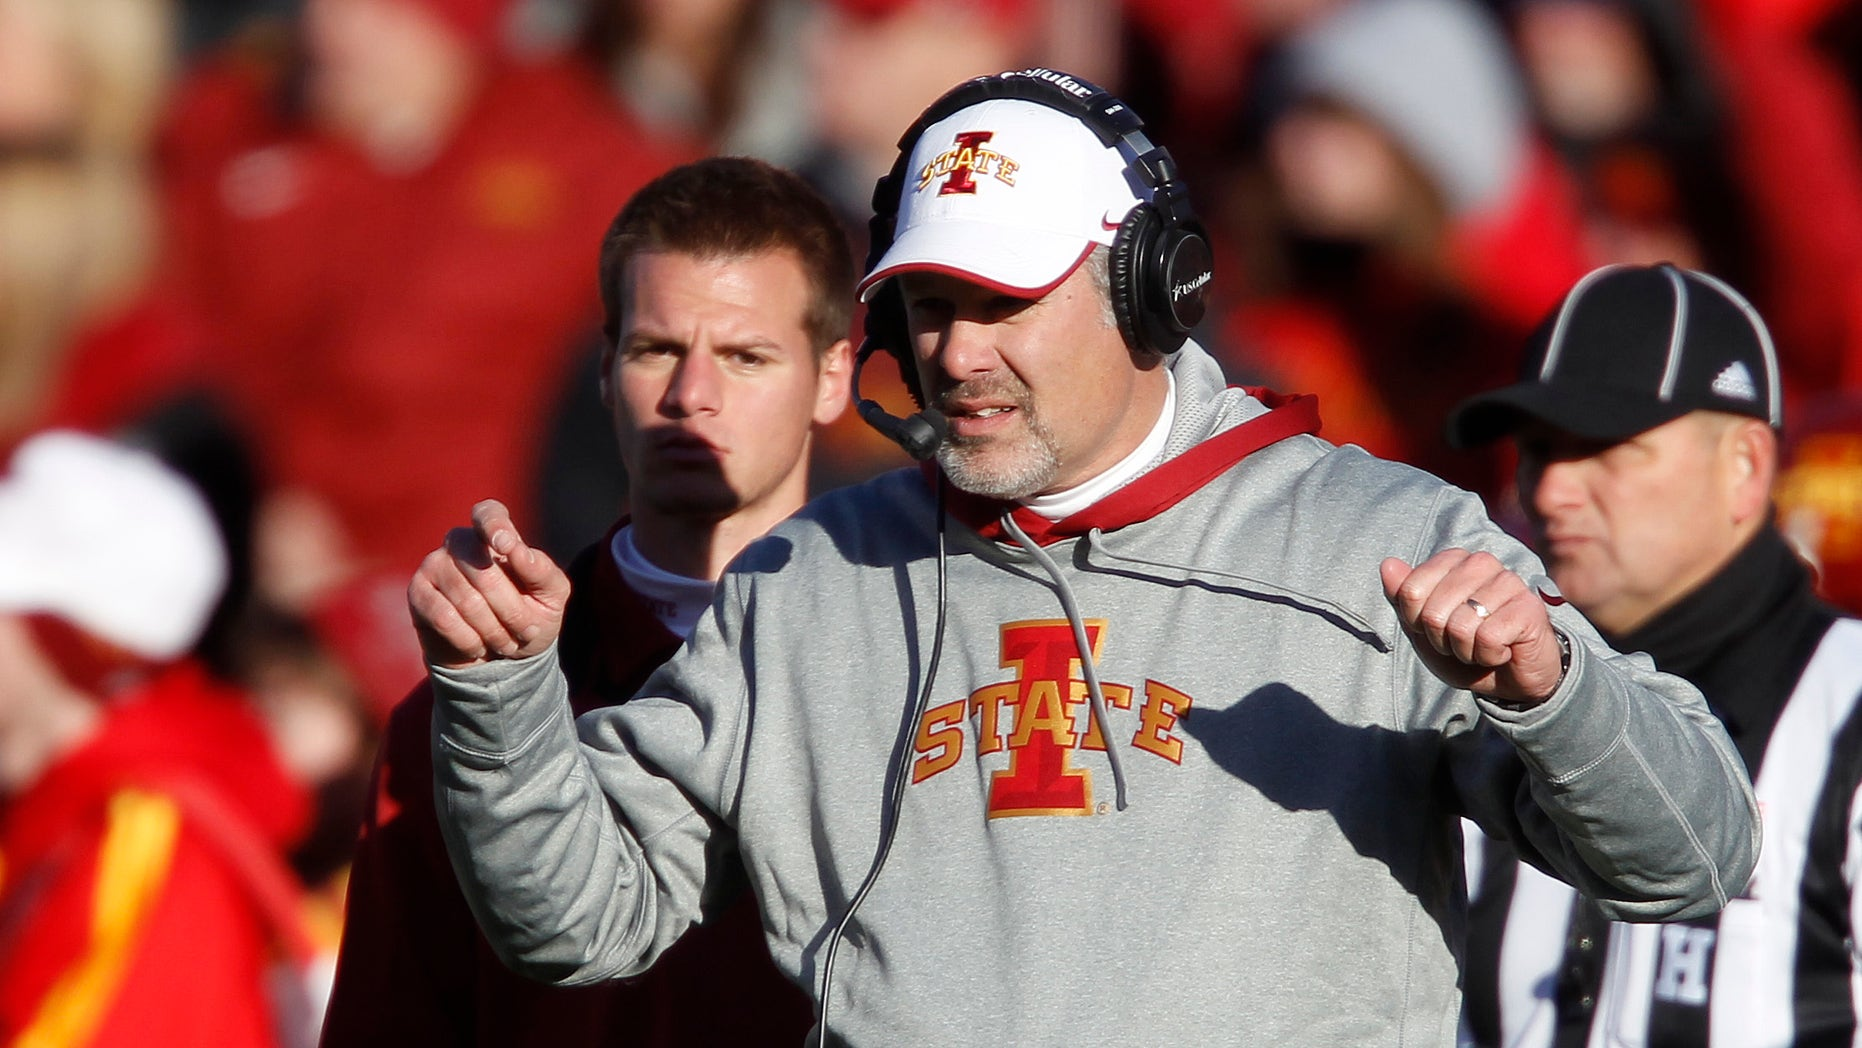 FILE - Iowa State head coach PaulRhoads directs his players during the first half of an NCAA college football game against West Virginia, in this Nov. 23, 2012 file photo taken in Ames, Iowa. Iowa State might have the best defense no one outside of Ames has heard of this season. The Cyclones held 11 of their 12 opponents below their season scoring average, and half of them at least 10 points under what they normally got.  (AP Photo/Matthew Putney, File)